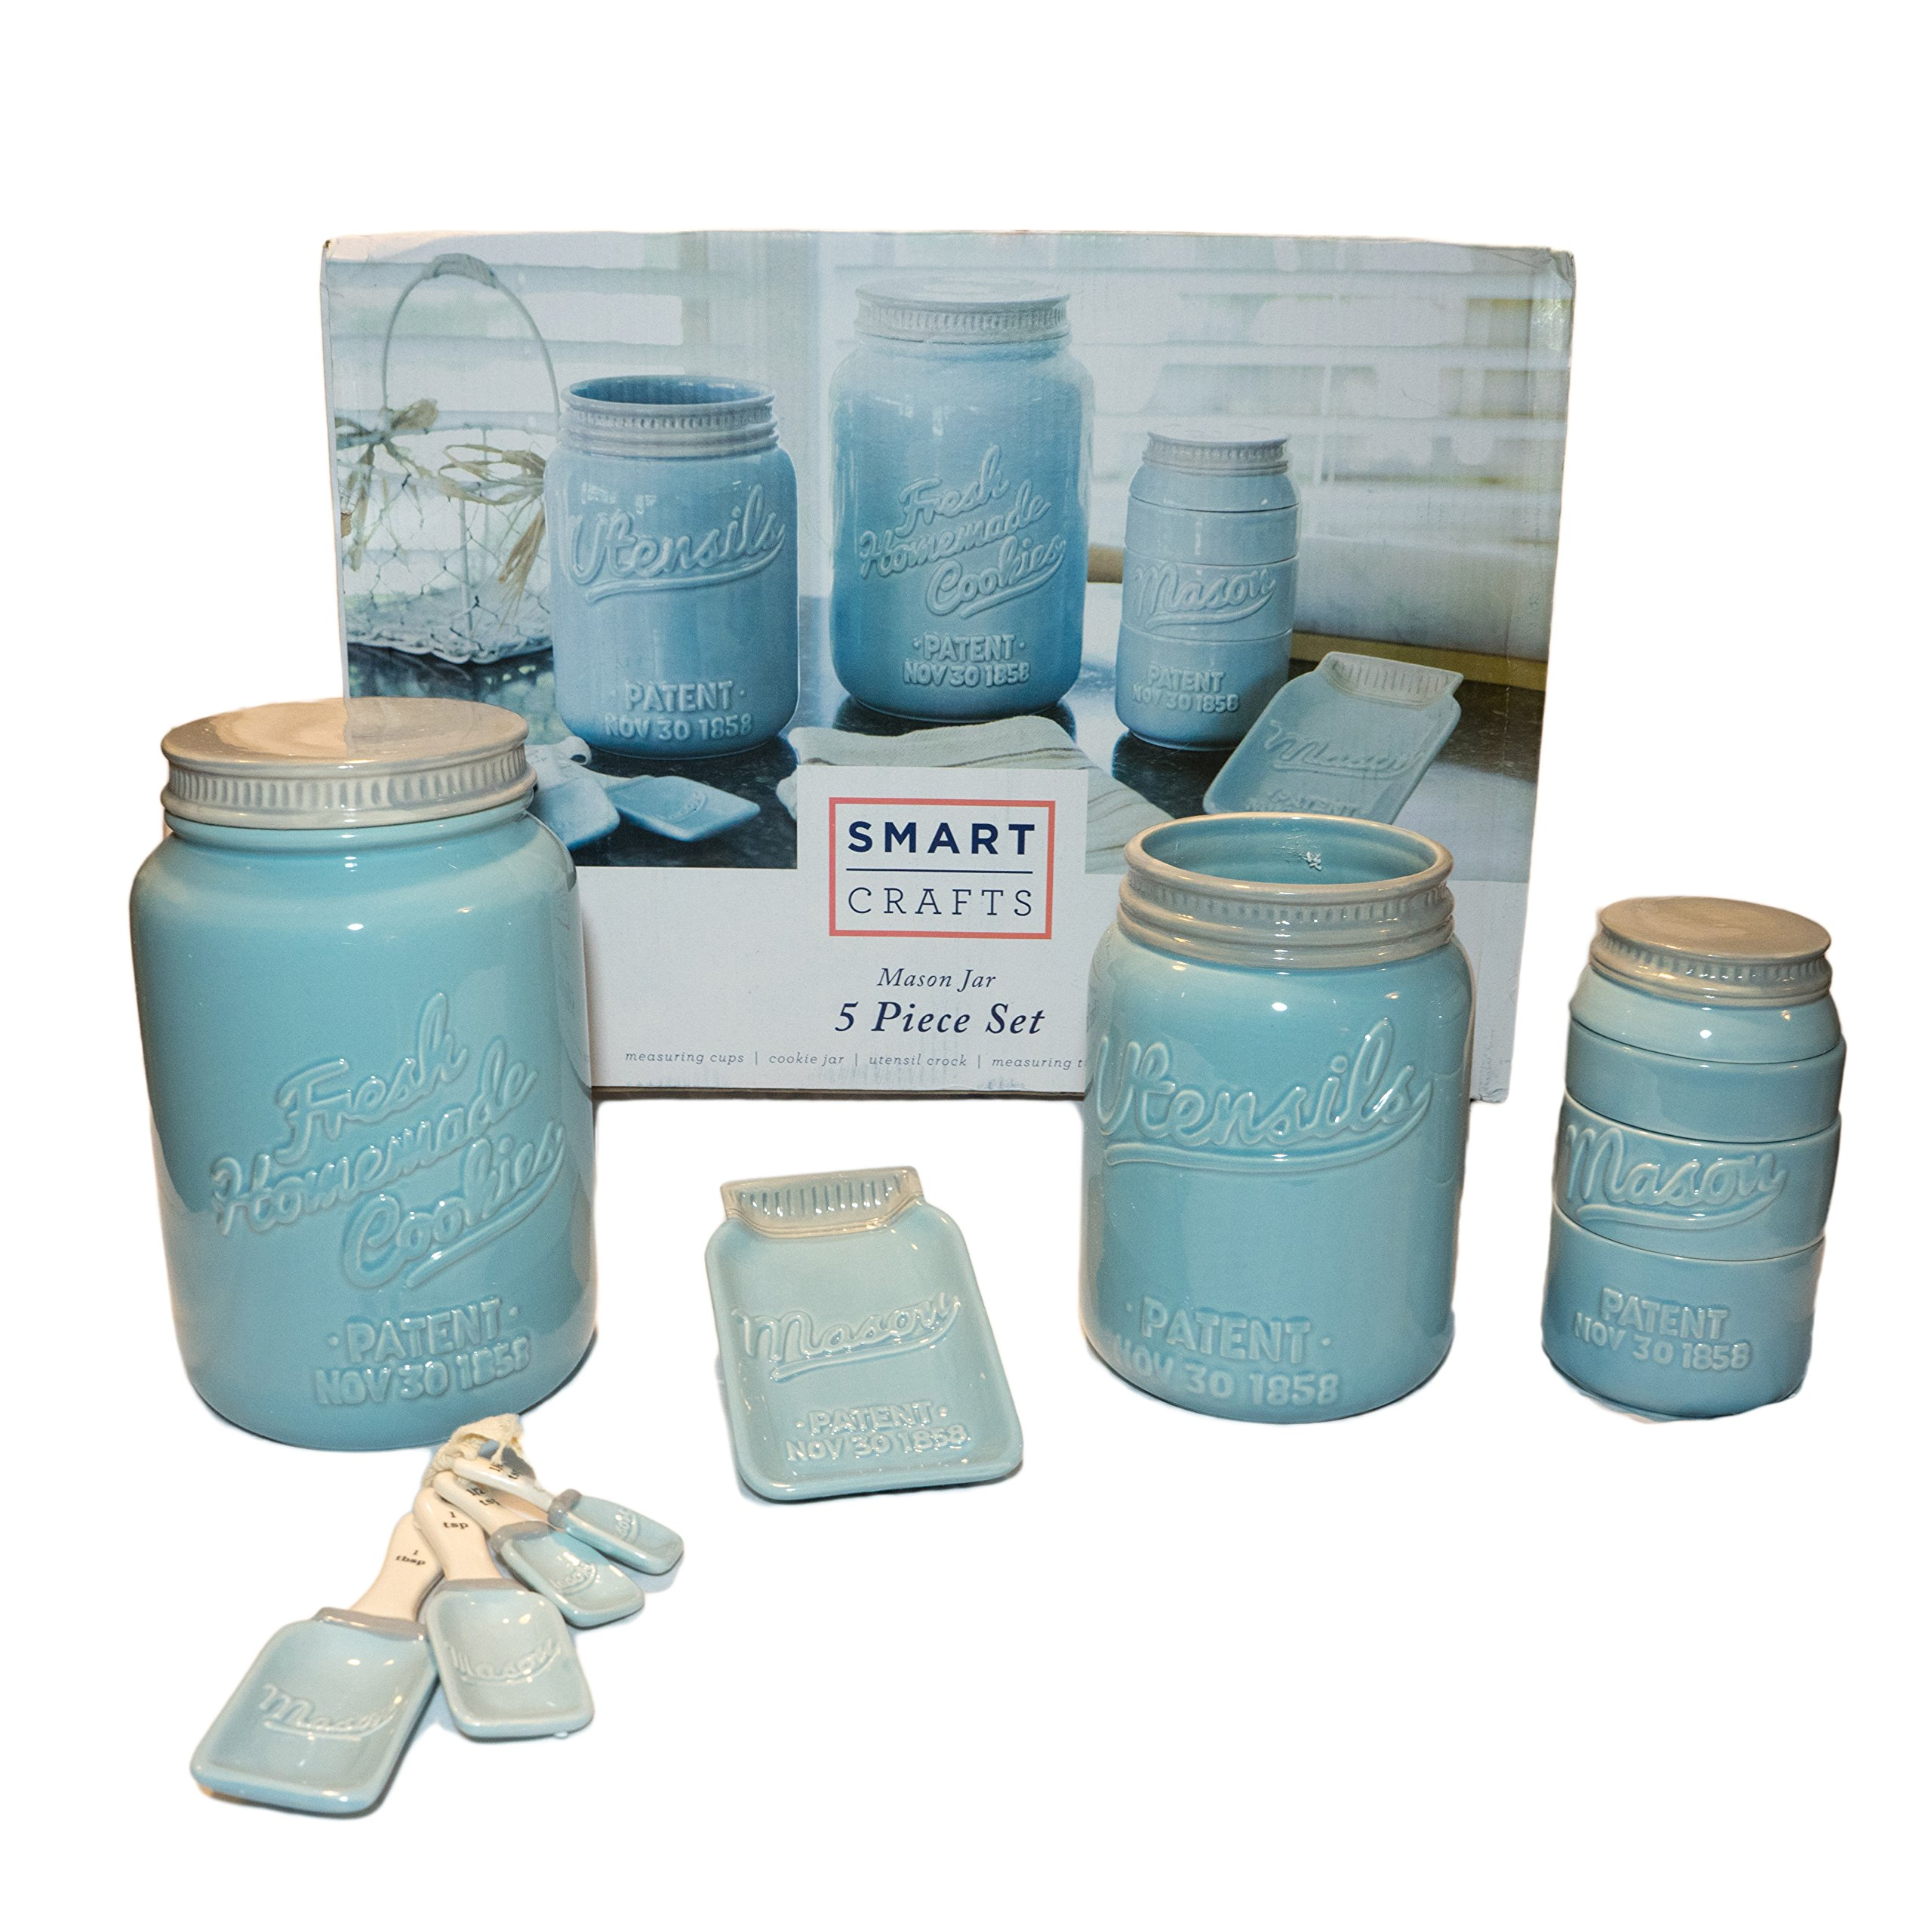 NEW! Blue Mason Jar Ceramic Kitchenware 5 Piece Set! This Set Includes Stackable Measuring Cups, Measuring Spoons, Spoon Rest, Utensil Crock and Cookie Jar!